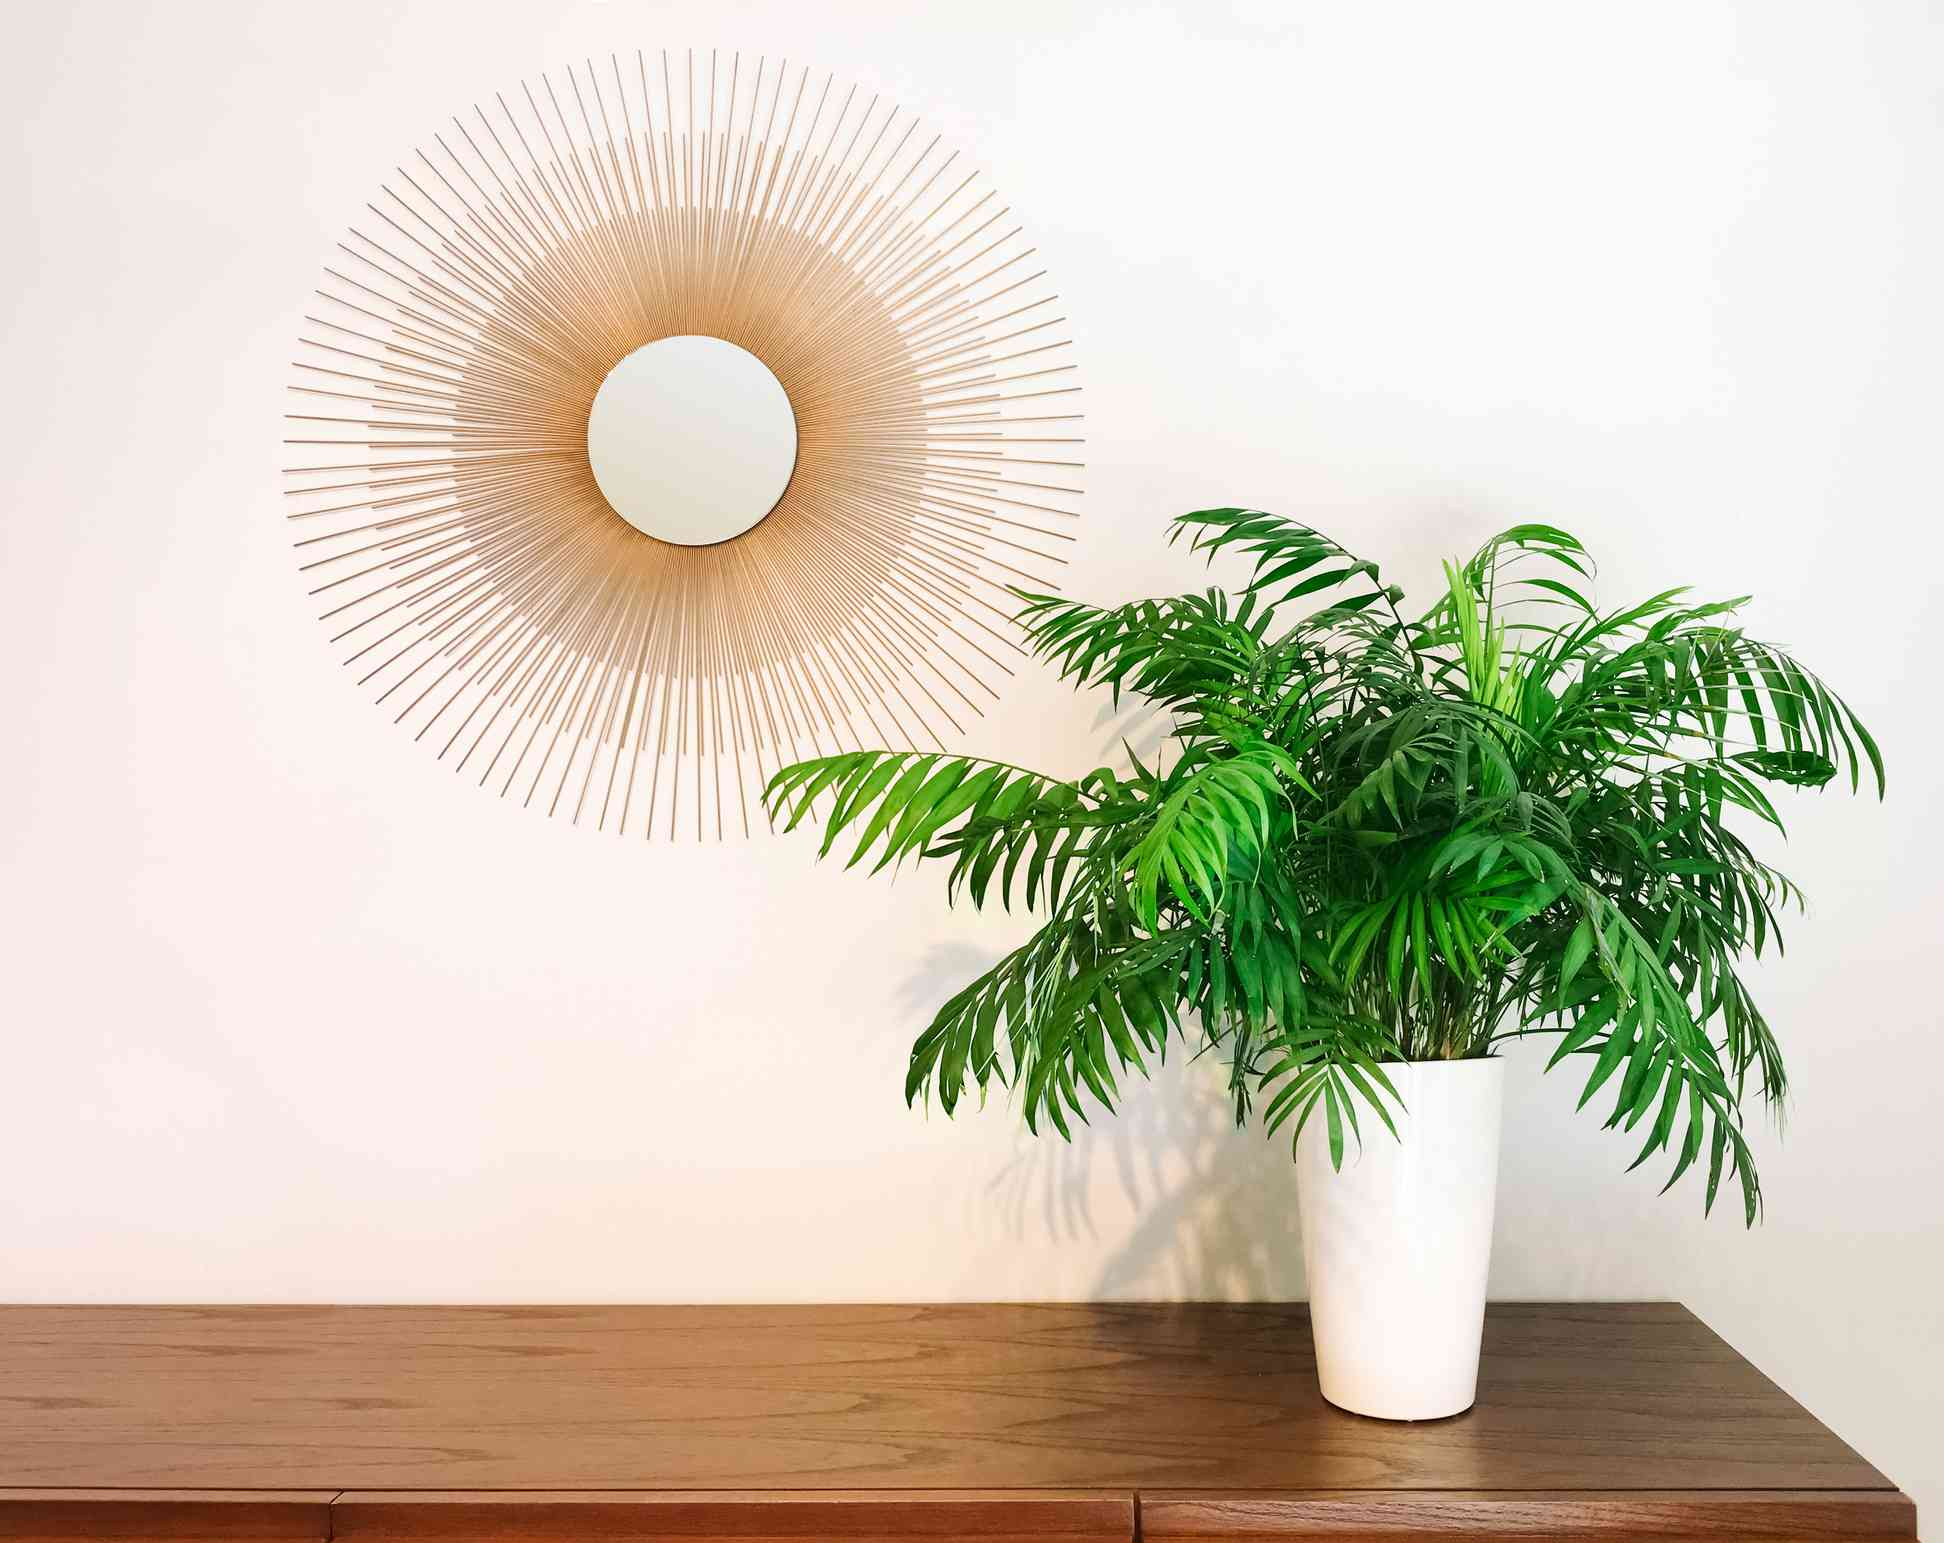 Parlor palm in a pot on a dresser